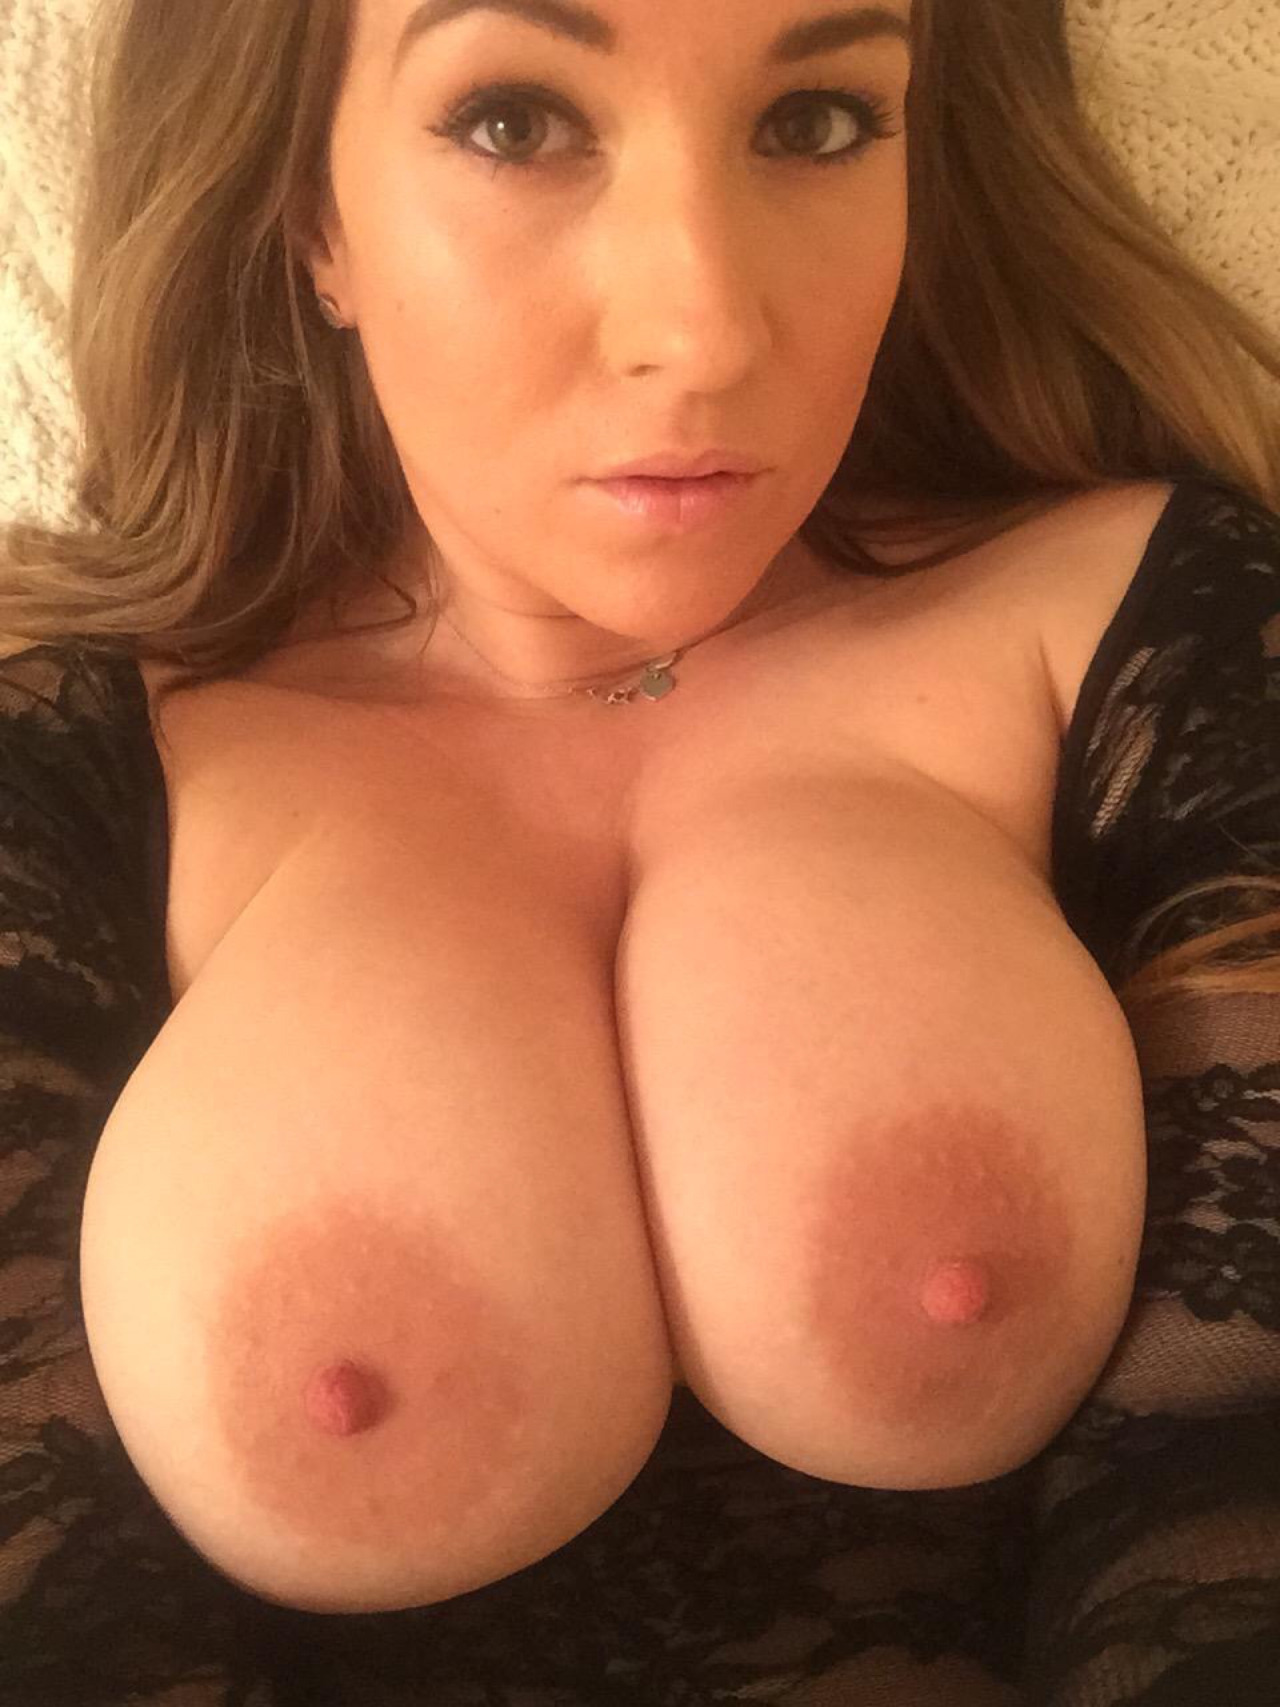 image Webcam busty girl crazy riding her man toy